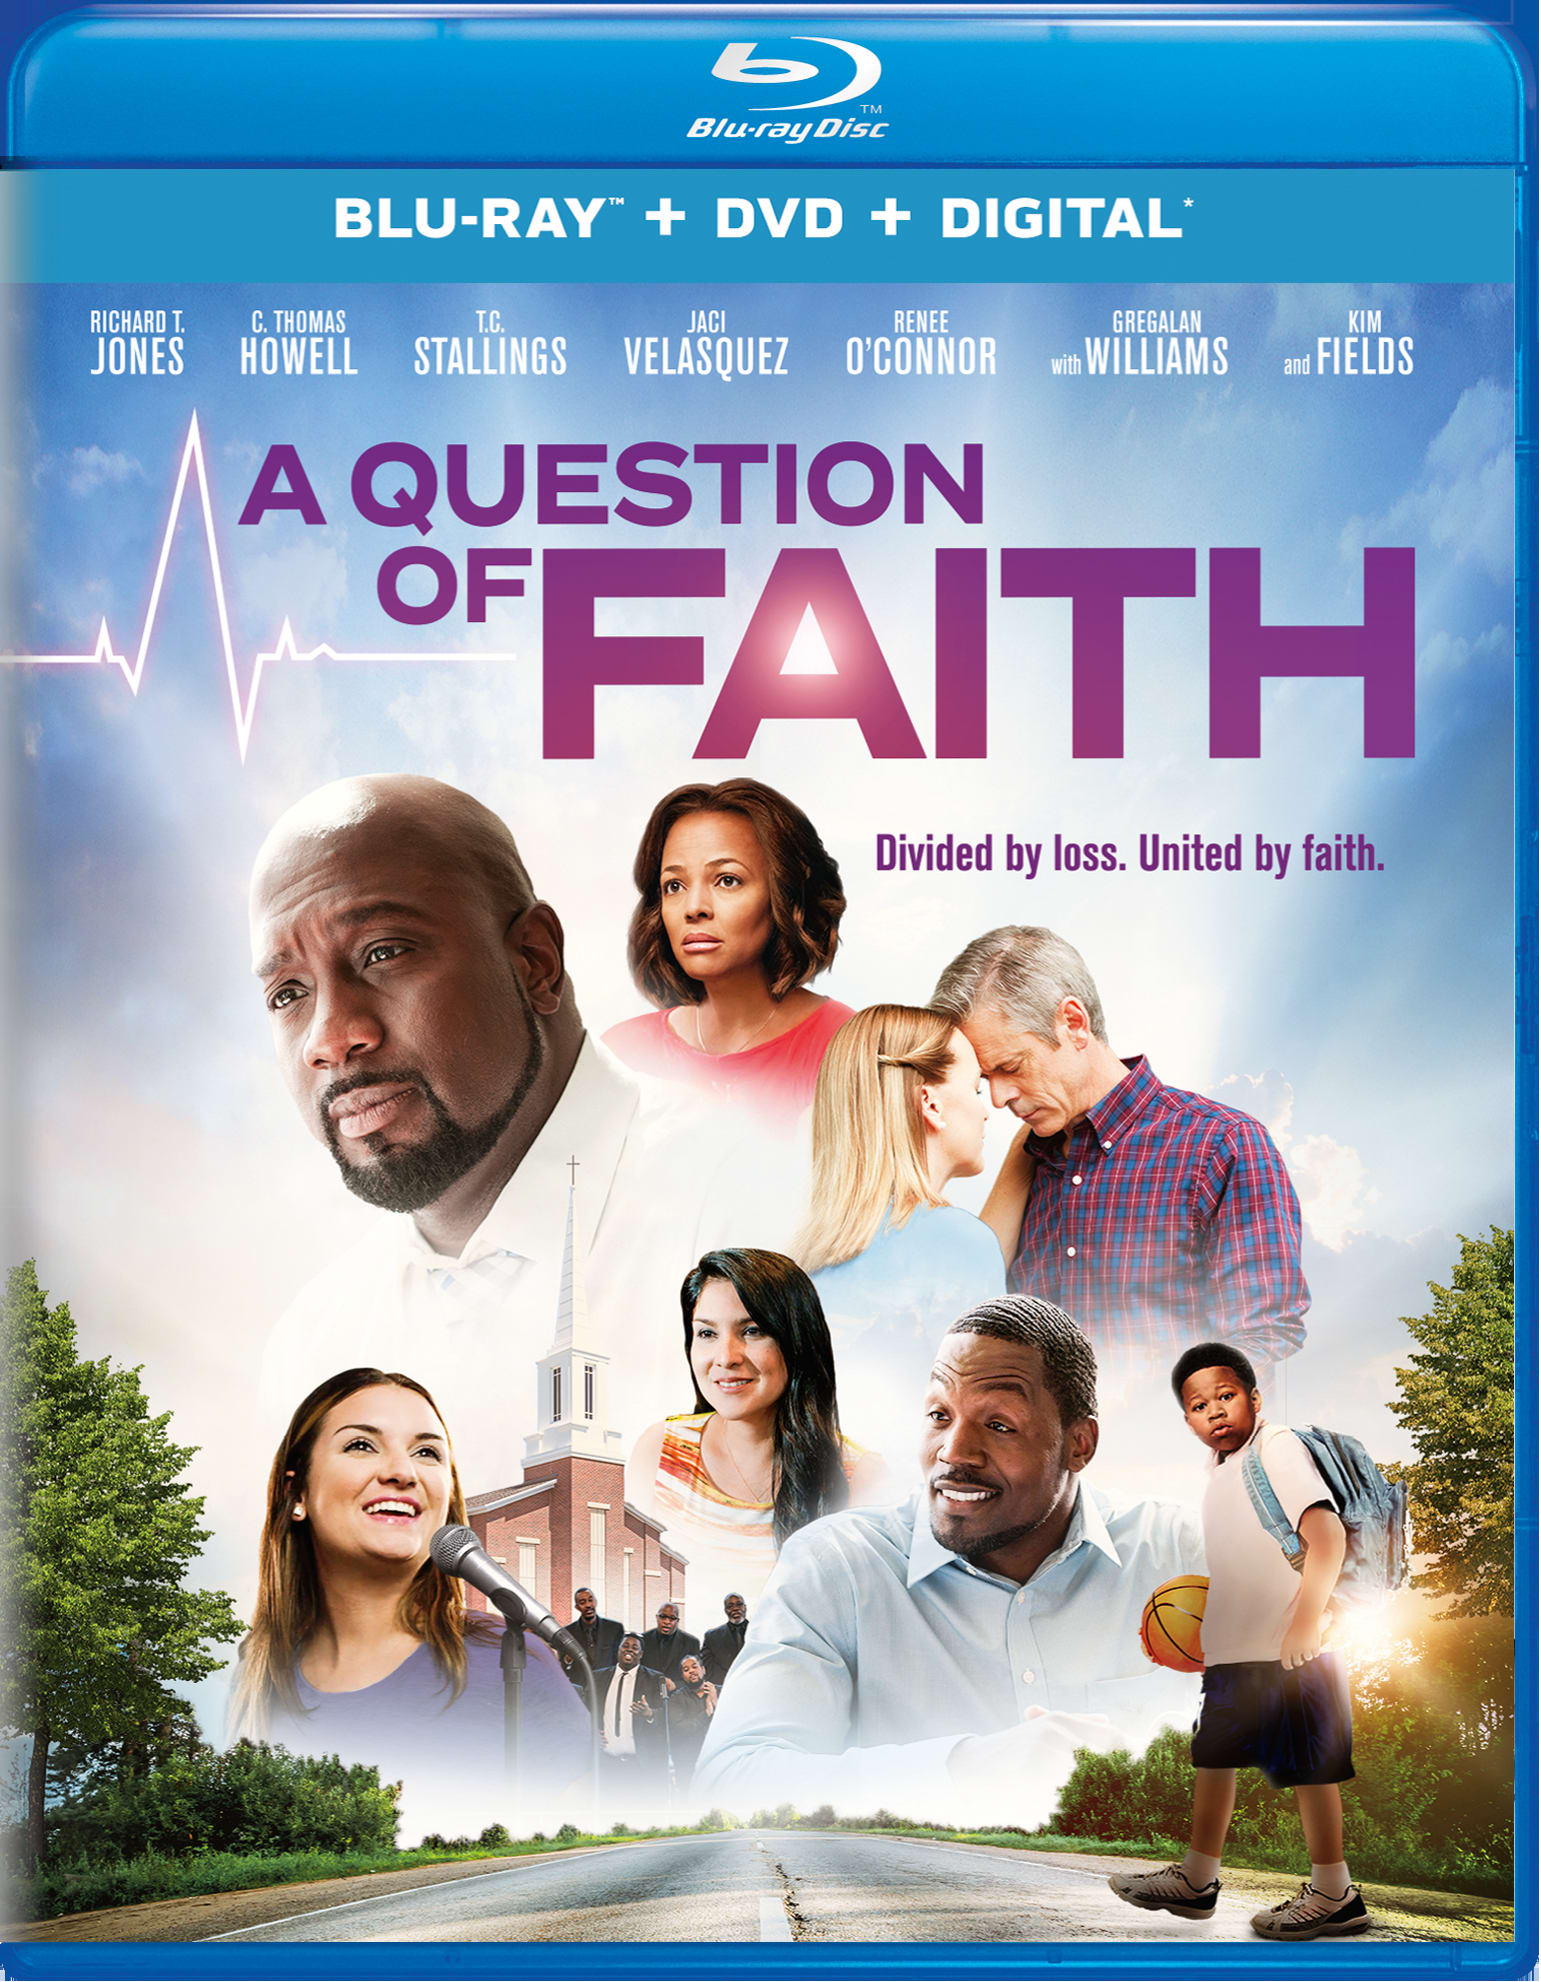 A Question of Faith (DVD + Digital) [Blu-ray]